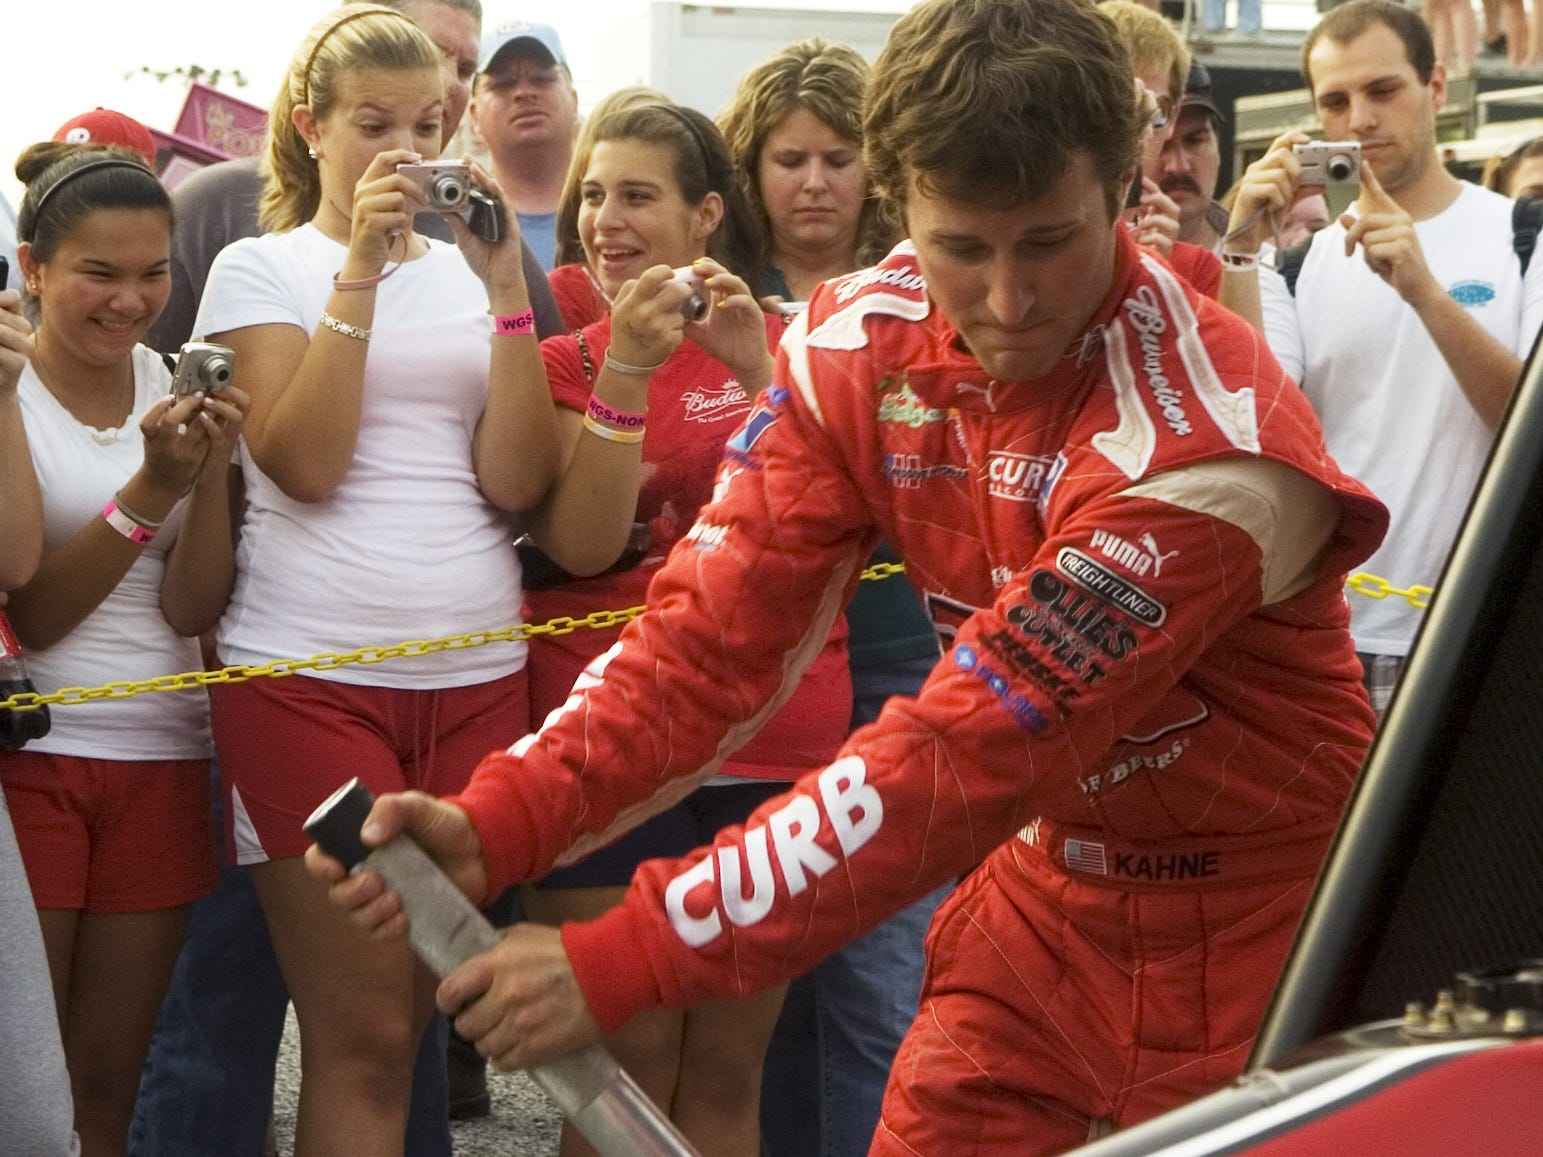 Young fans oggle NASCAR driver Kasey Kahne as he prepares his car to race at Williams Grove Speedway Wednesday, August 5, 2009.